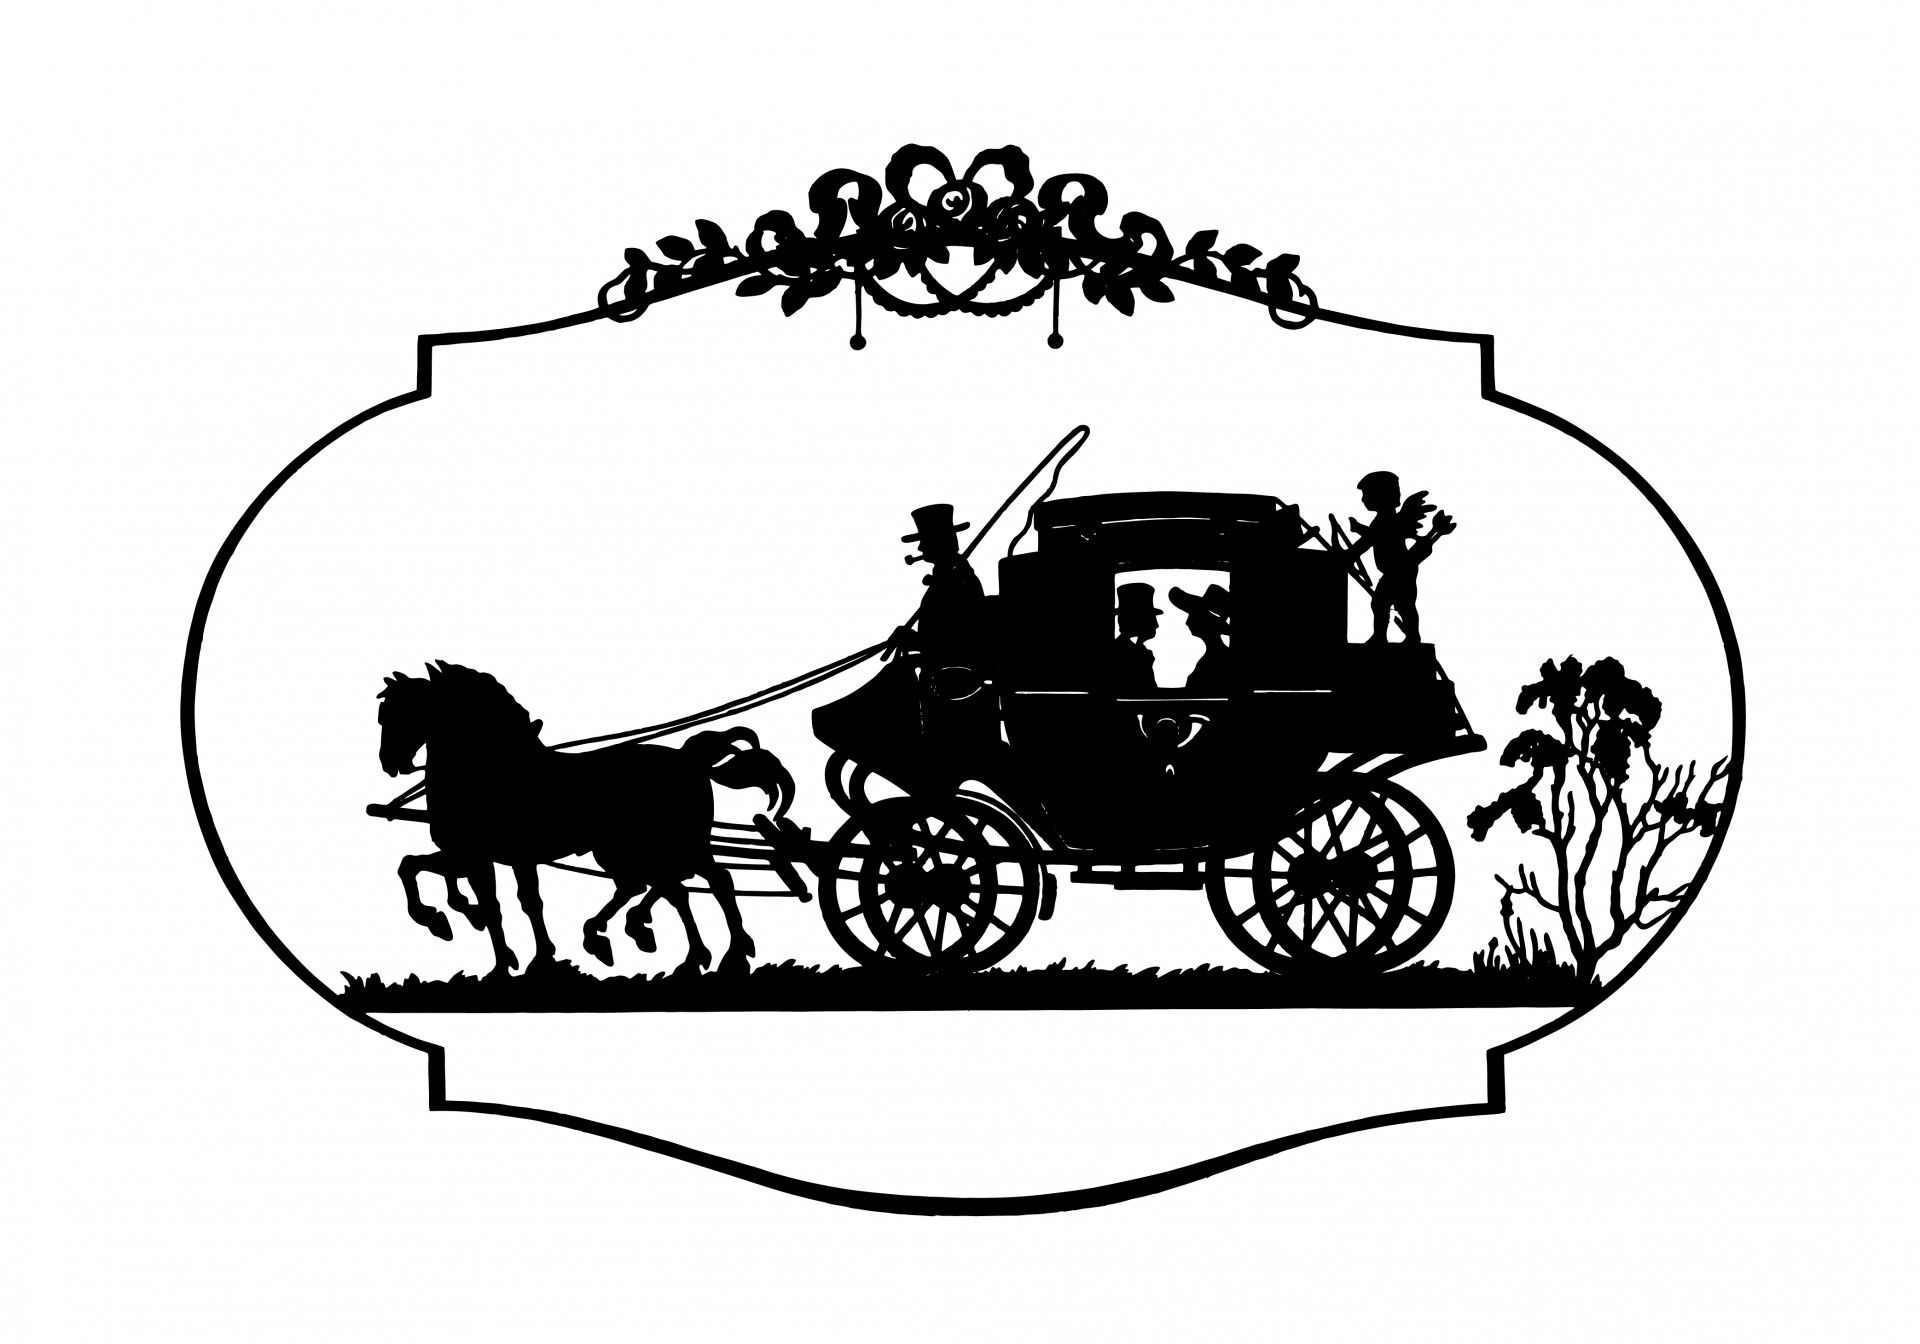 1920x1344 Horse Amp Carriage Vintage Clipart Free Stock Photo Hd